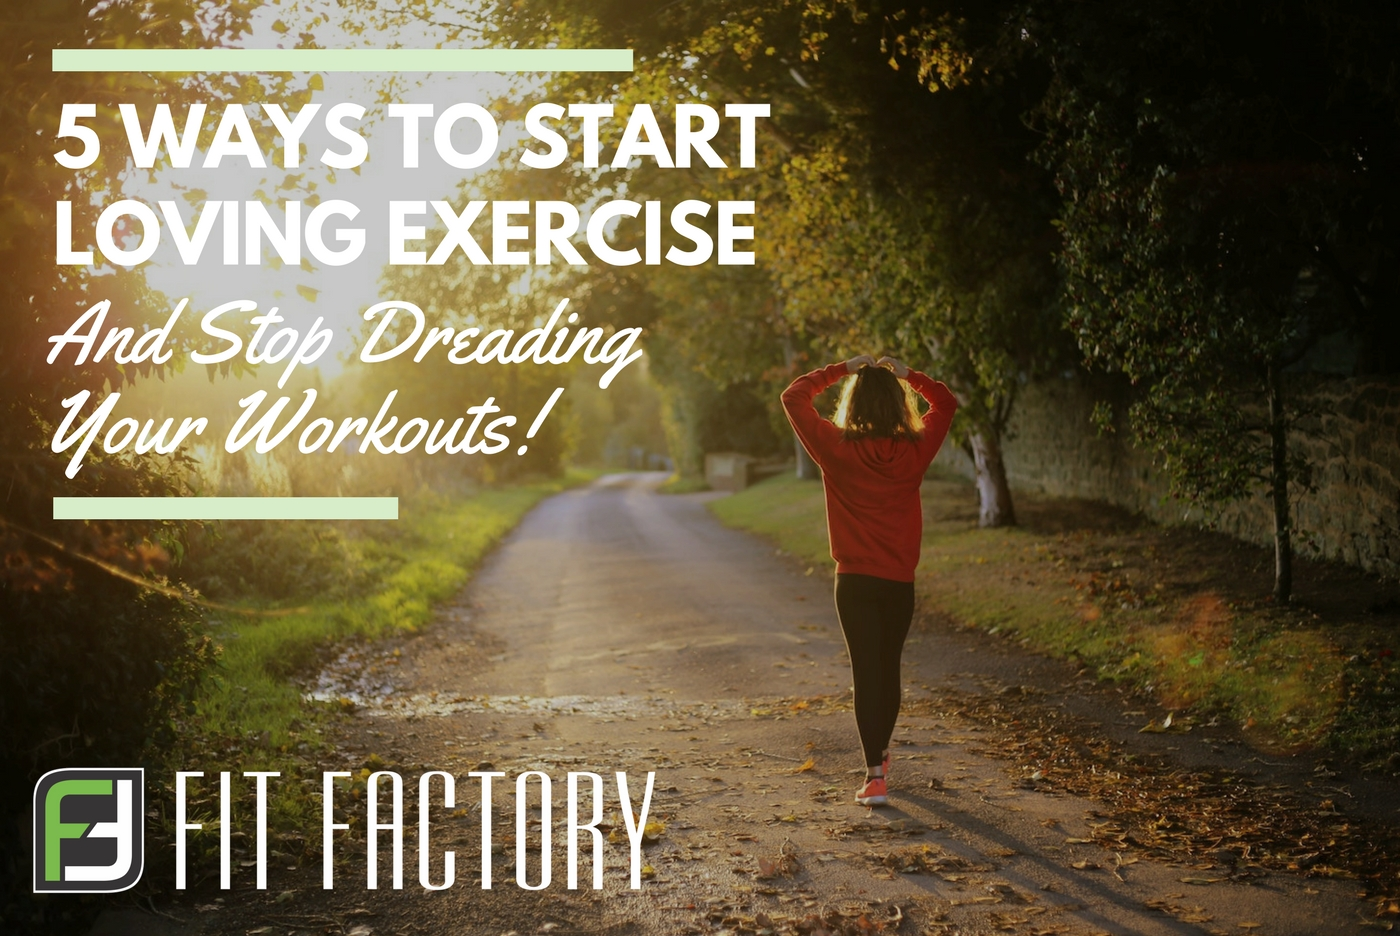 5 Ways To Start Loving Exercise (And Stop Dreading Your Workouts)